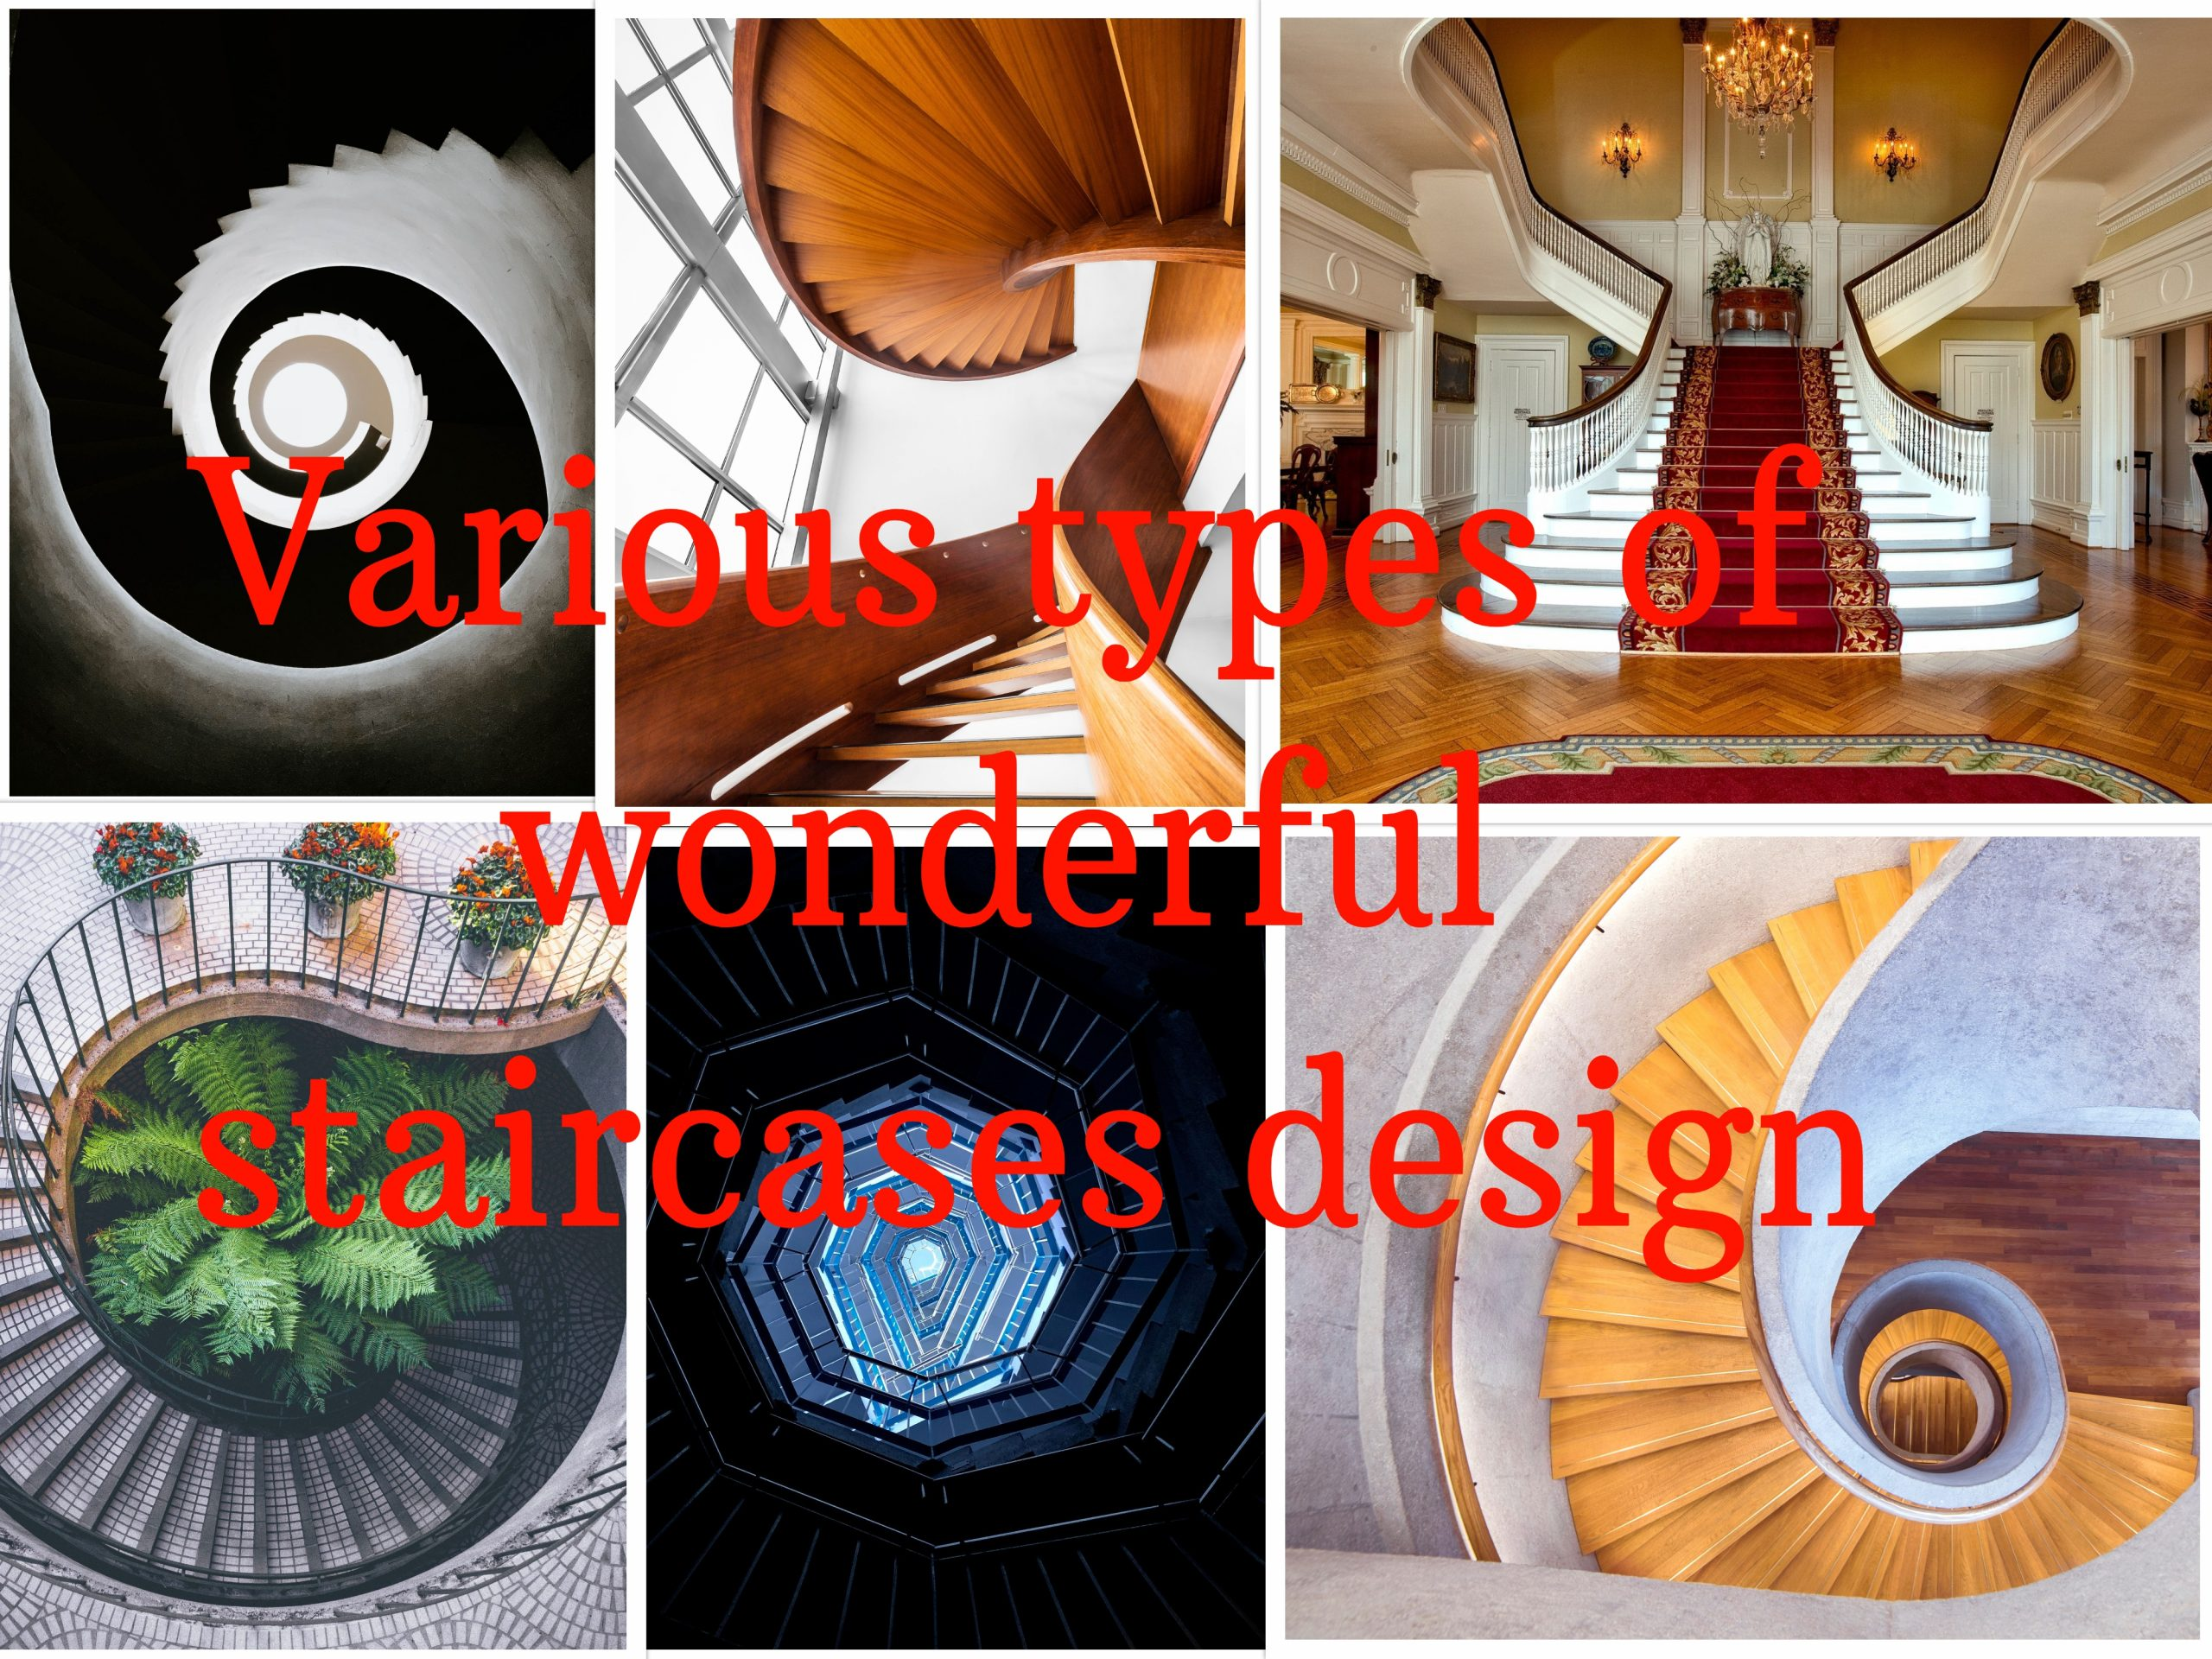 Various types of wonderful staircases design | Civilengi